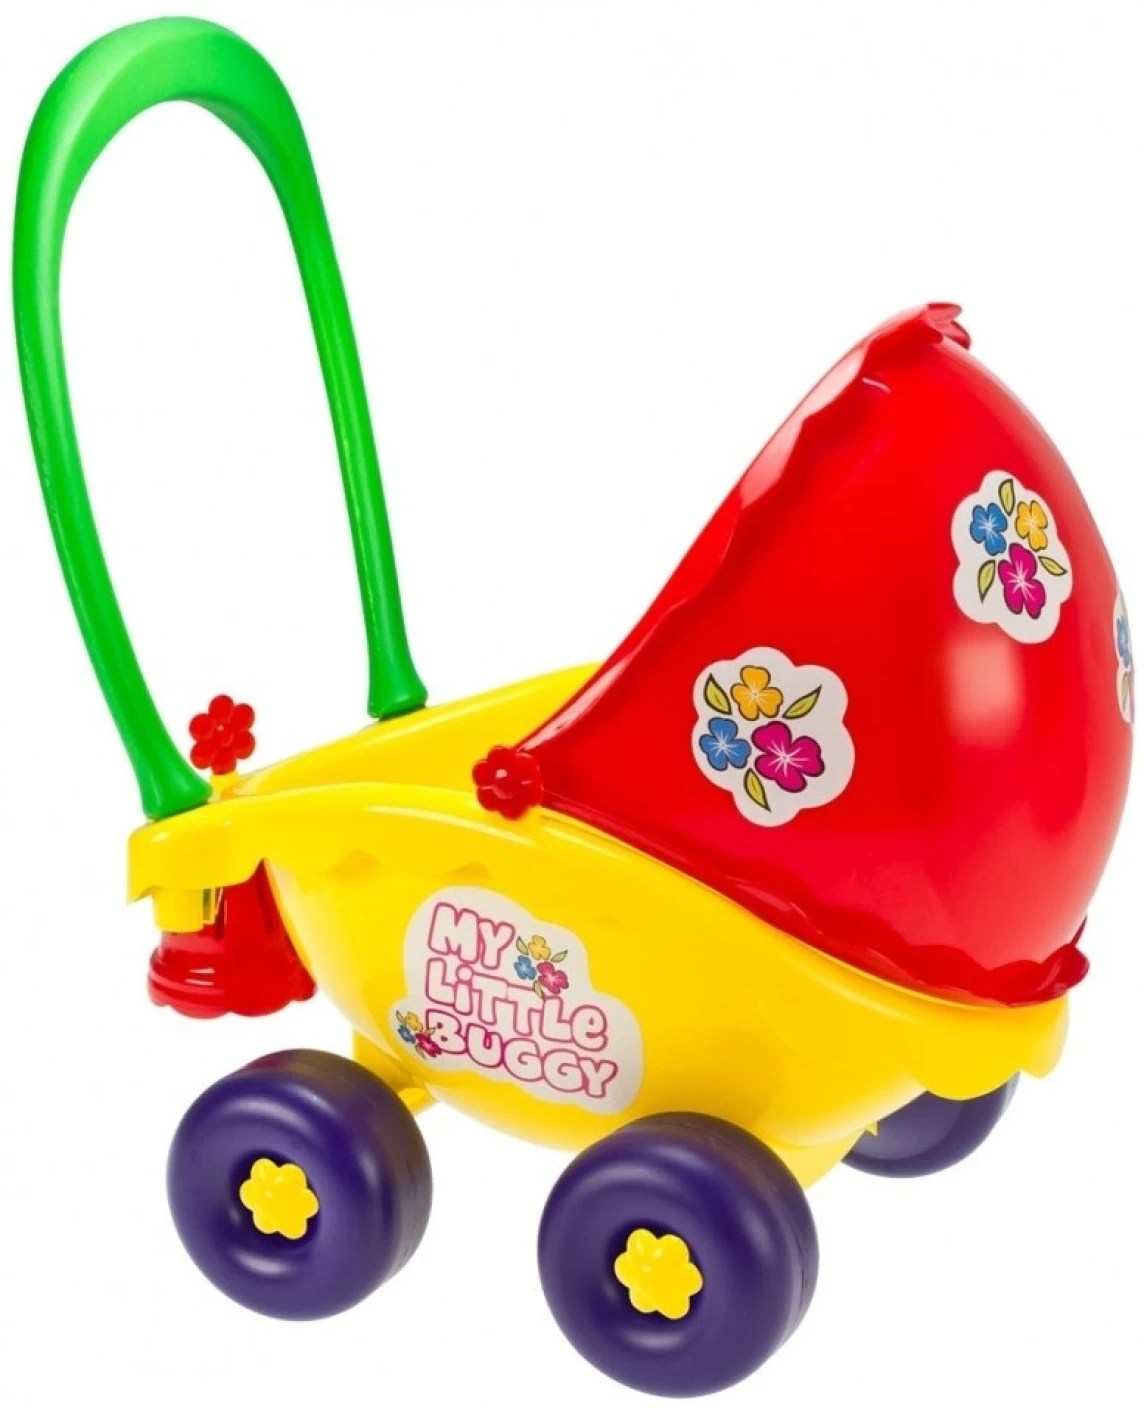 Toy Pram Plastic Funskool My Little Buggy My Little Buggy Shop For